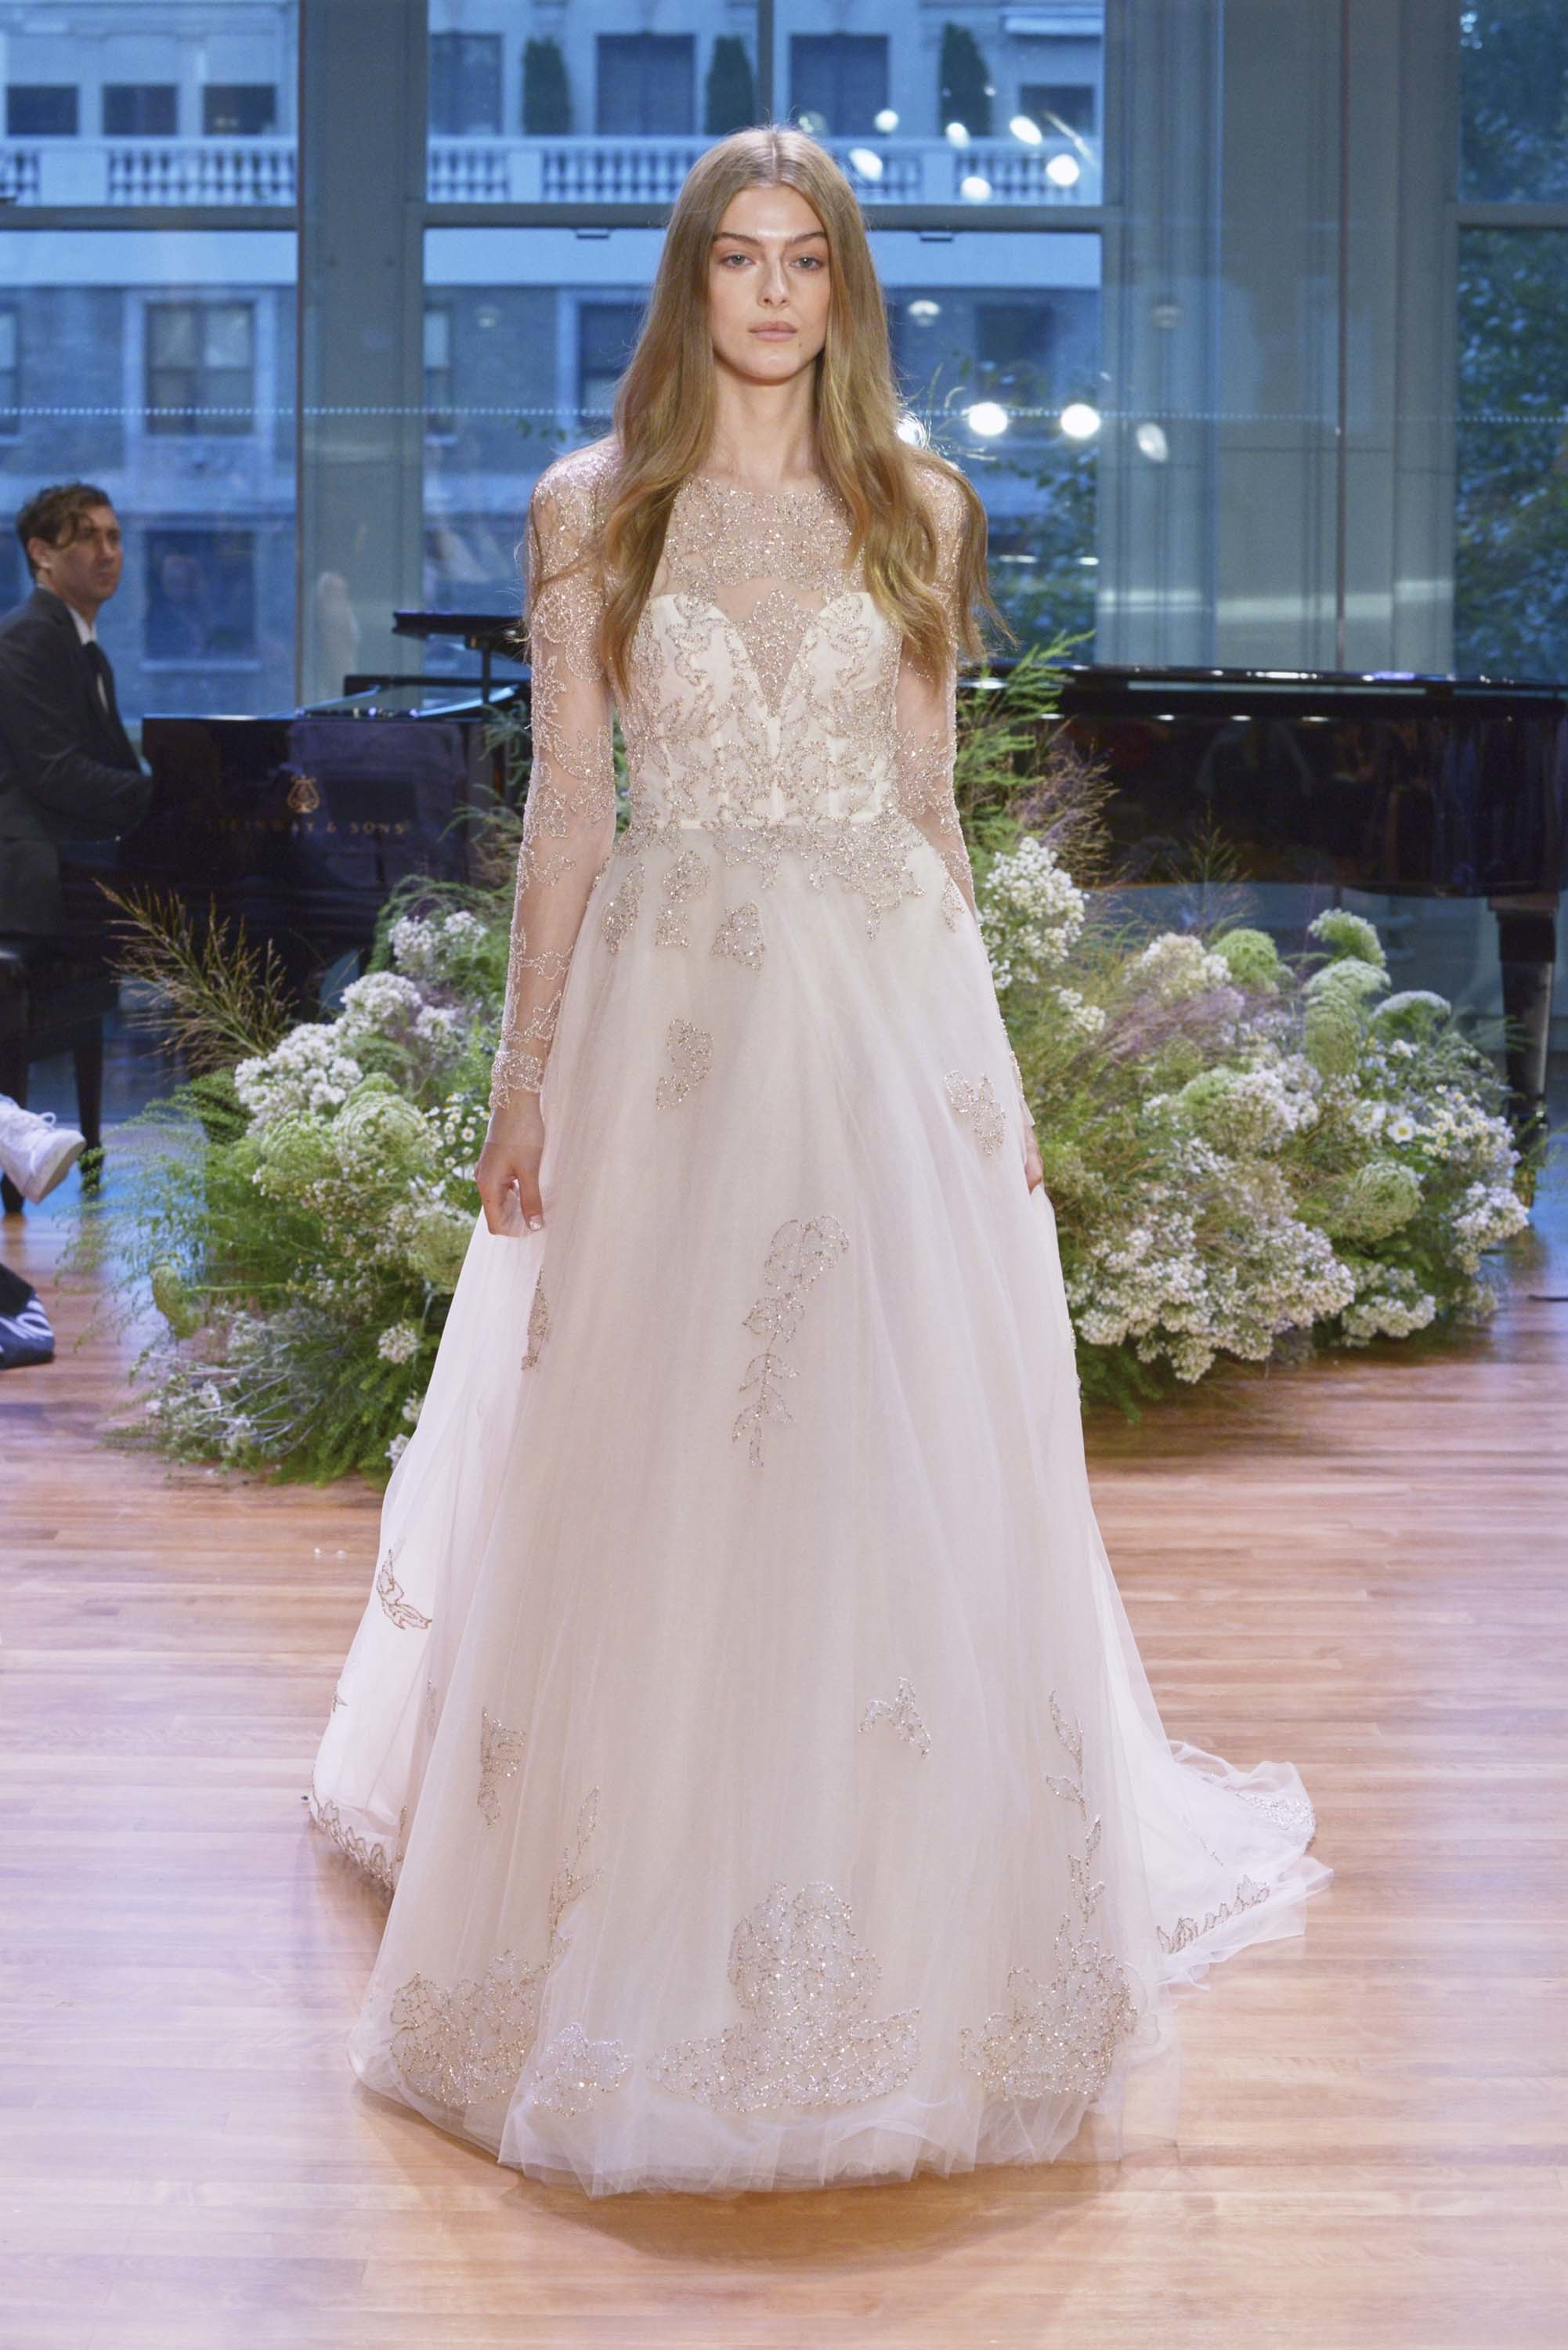 LOVE FIND CO. // The hottest bridal gown trends of 2016 - Monique Lhuillier // Follow @lovefindco on Instagram & Pinterest